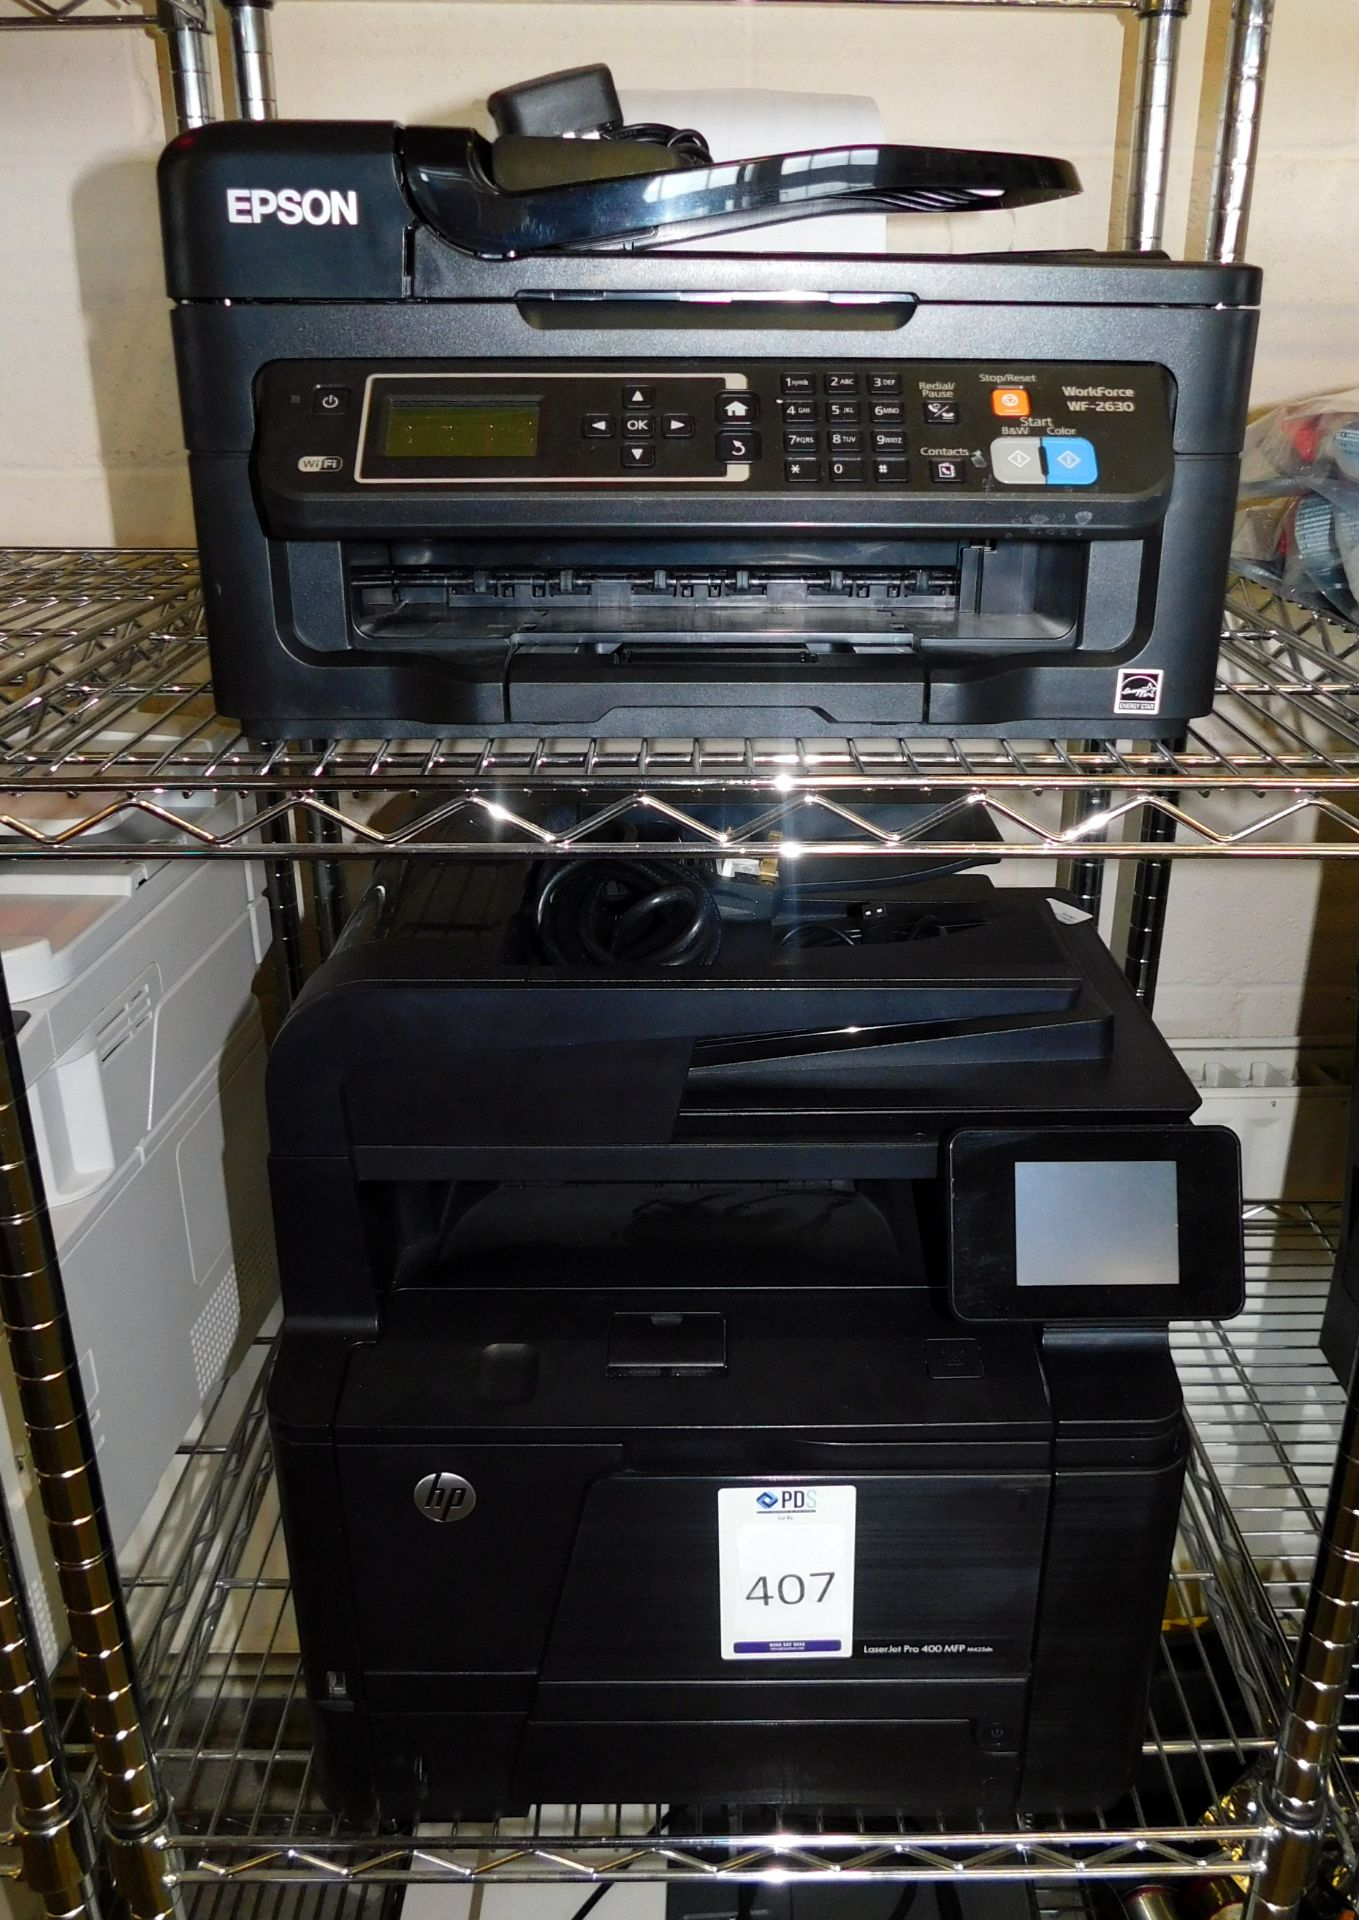 Los 407 - HP LaserJet Pro 400 MFP & Epson Workforce 2630 Printers (Located Stockport – See General Notes for